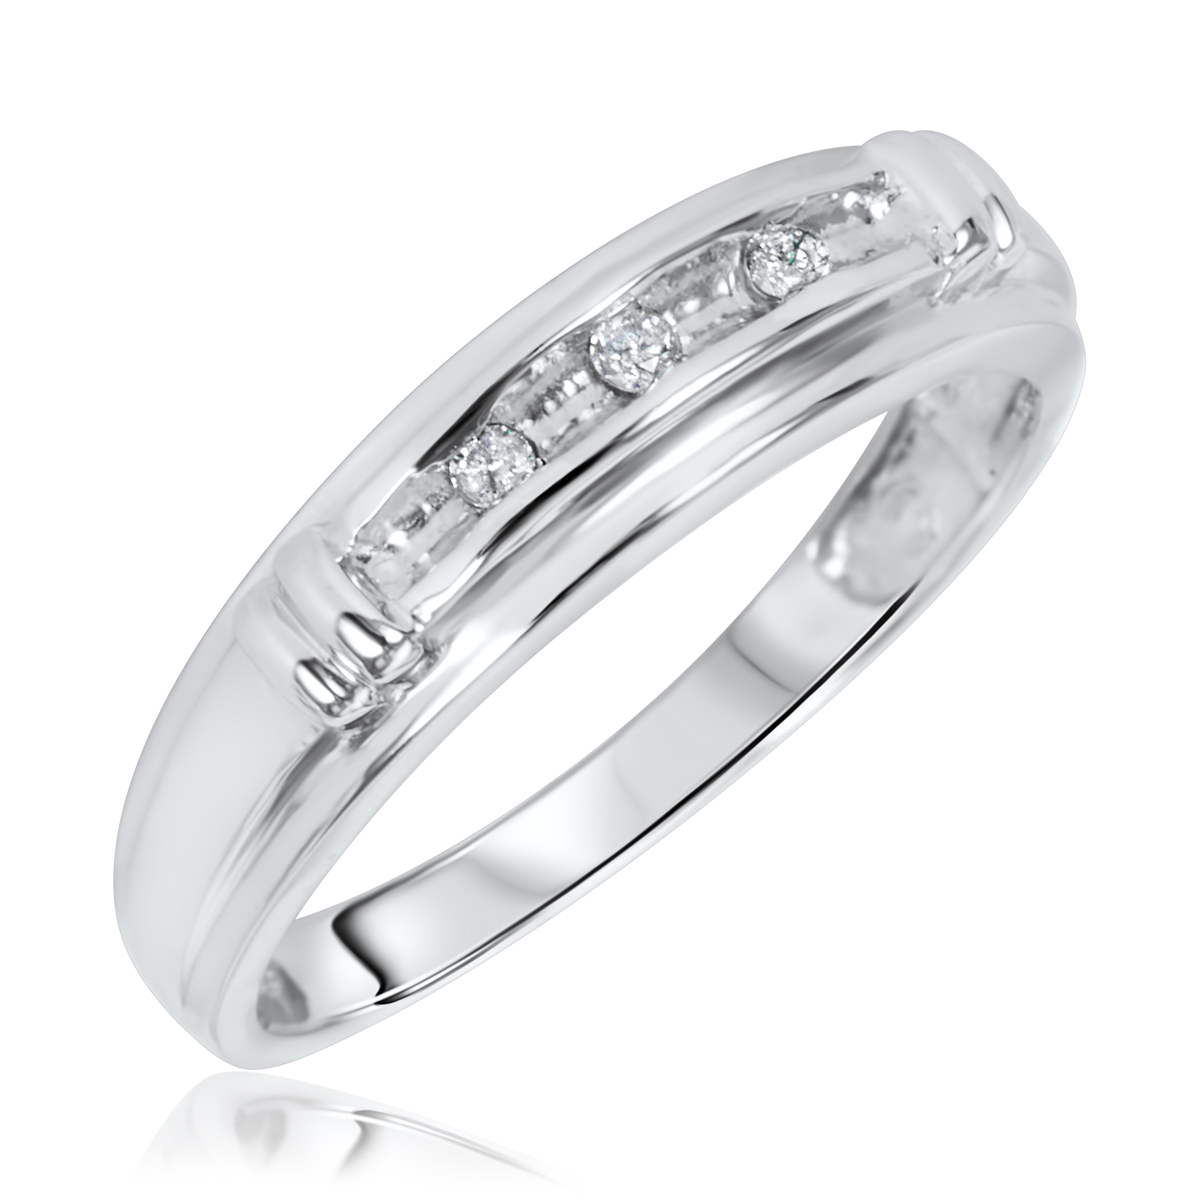 1/10 CT. T.W. Round Cut Diamond Ladies Wedding Band 14K White Gold- Size 8